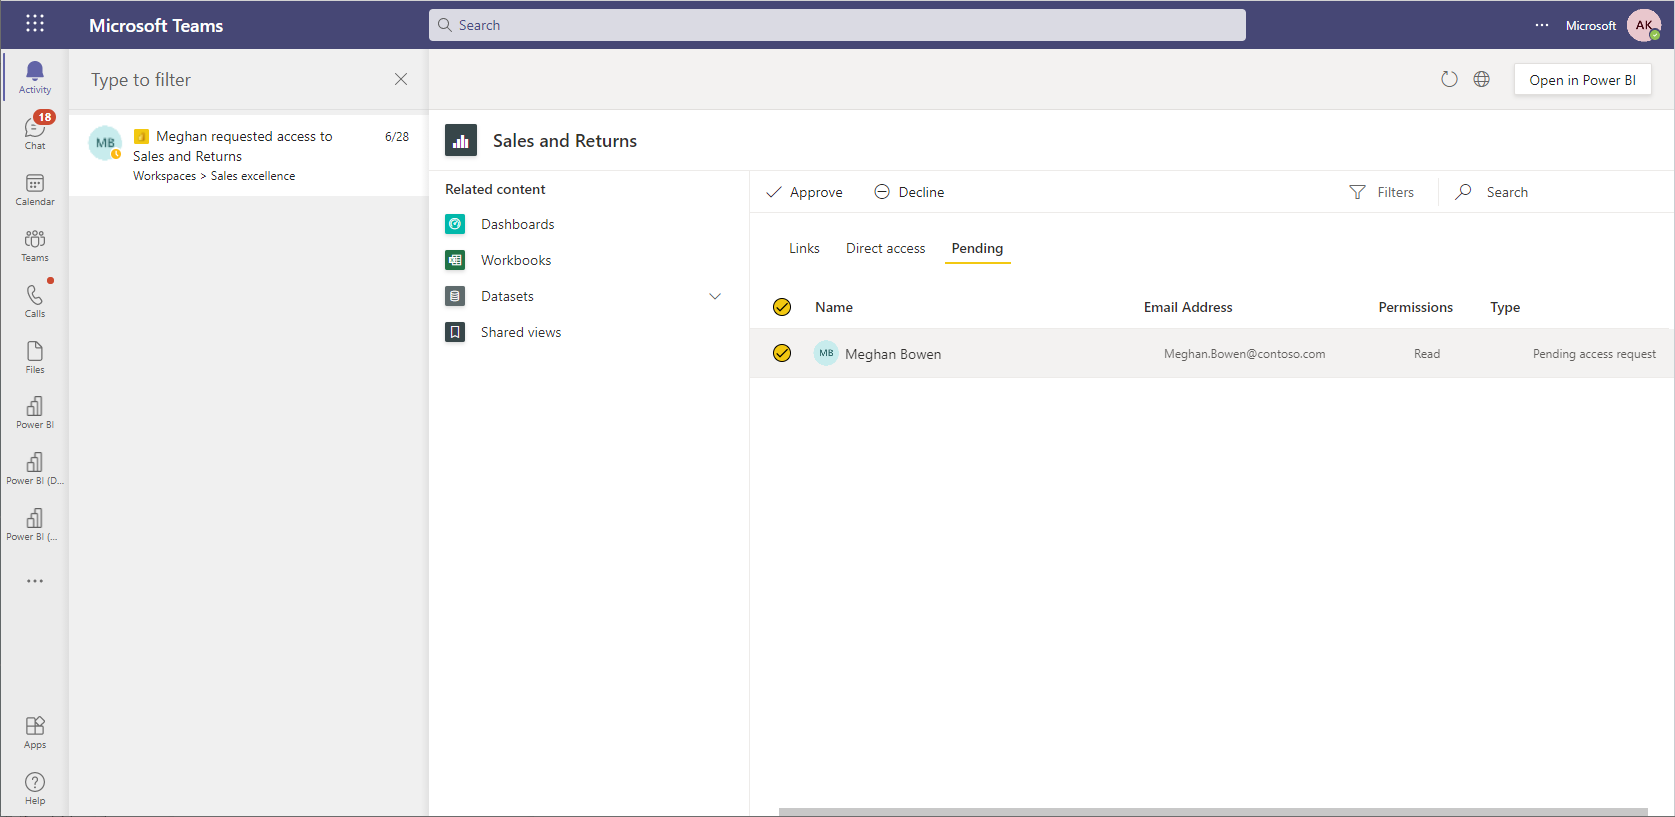 A screenshot of the Power BI request access notification in the Microsoft Teams activity feed. It shows the access management page loaded in the activity feed experience making it easy to quickly grant access.